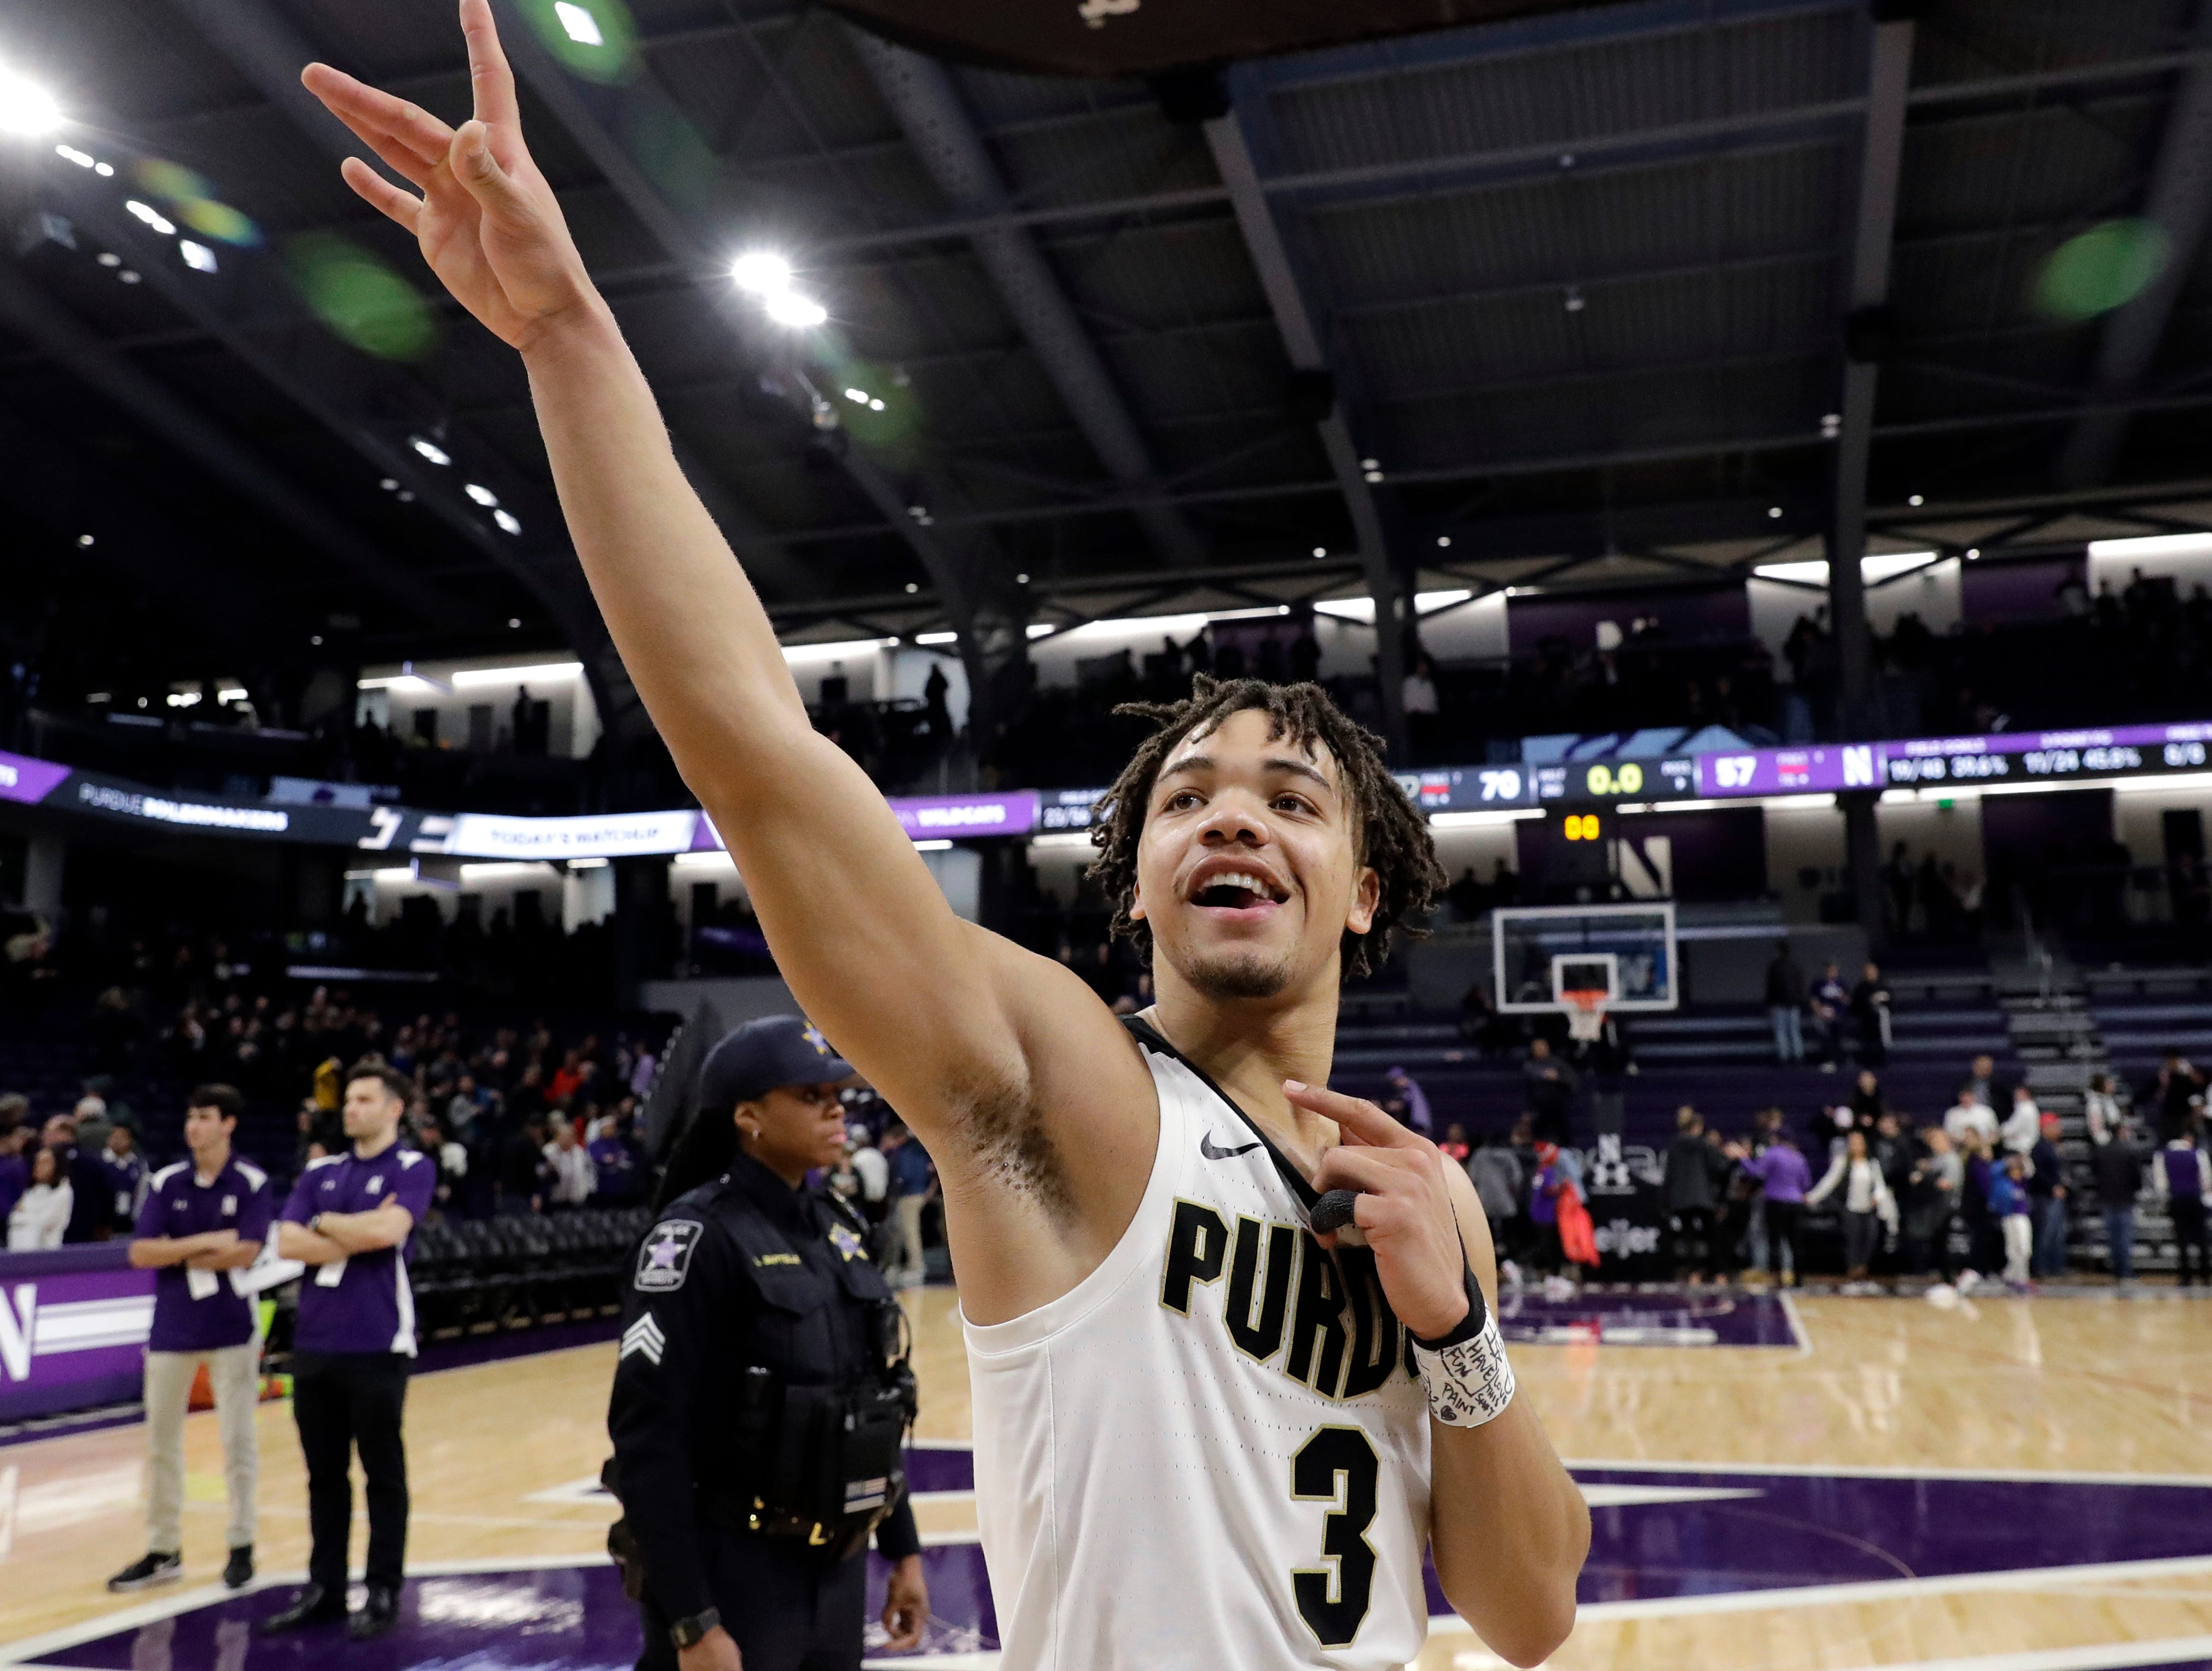 2. Purdue (23-8, 16-4): The Boilermakers had the outright championship in their hands but couldn't close the deal, losing on the road early in the week at Minnesota. They bounced back by taking care of business to knock off Northwestern and earn a share of the conference championship, capping off a season many didn't think would end with a Big Ten title and leaving Matt Painter as a potential coach of the year. Last week: 1.